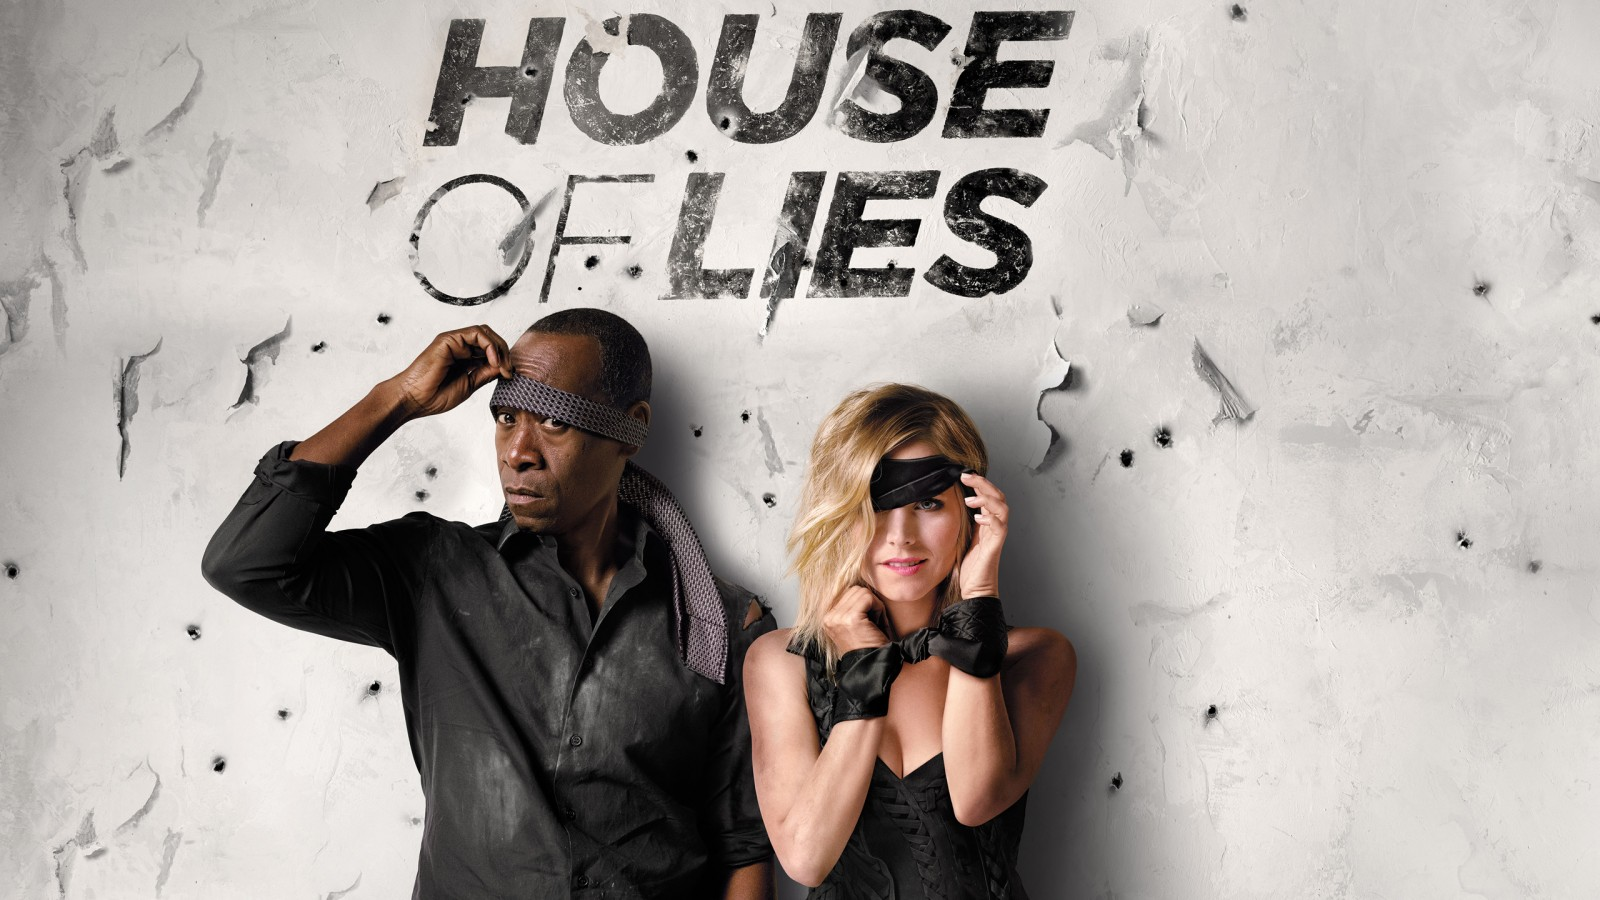 Revolution Wallpaper Hd House Of Lies Tv Series Wallpapers Hd Wallpapers Id 13137